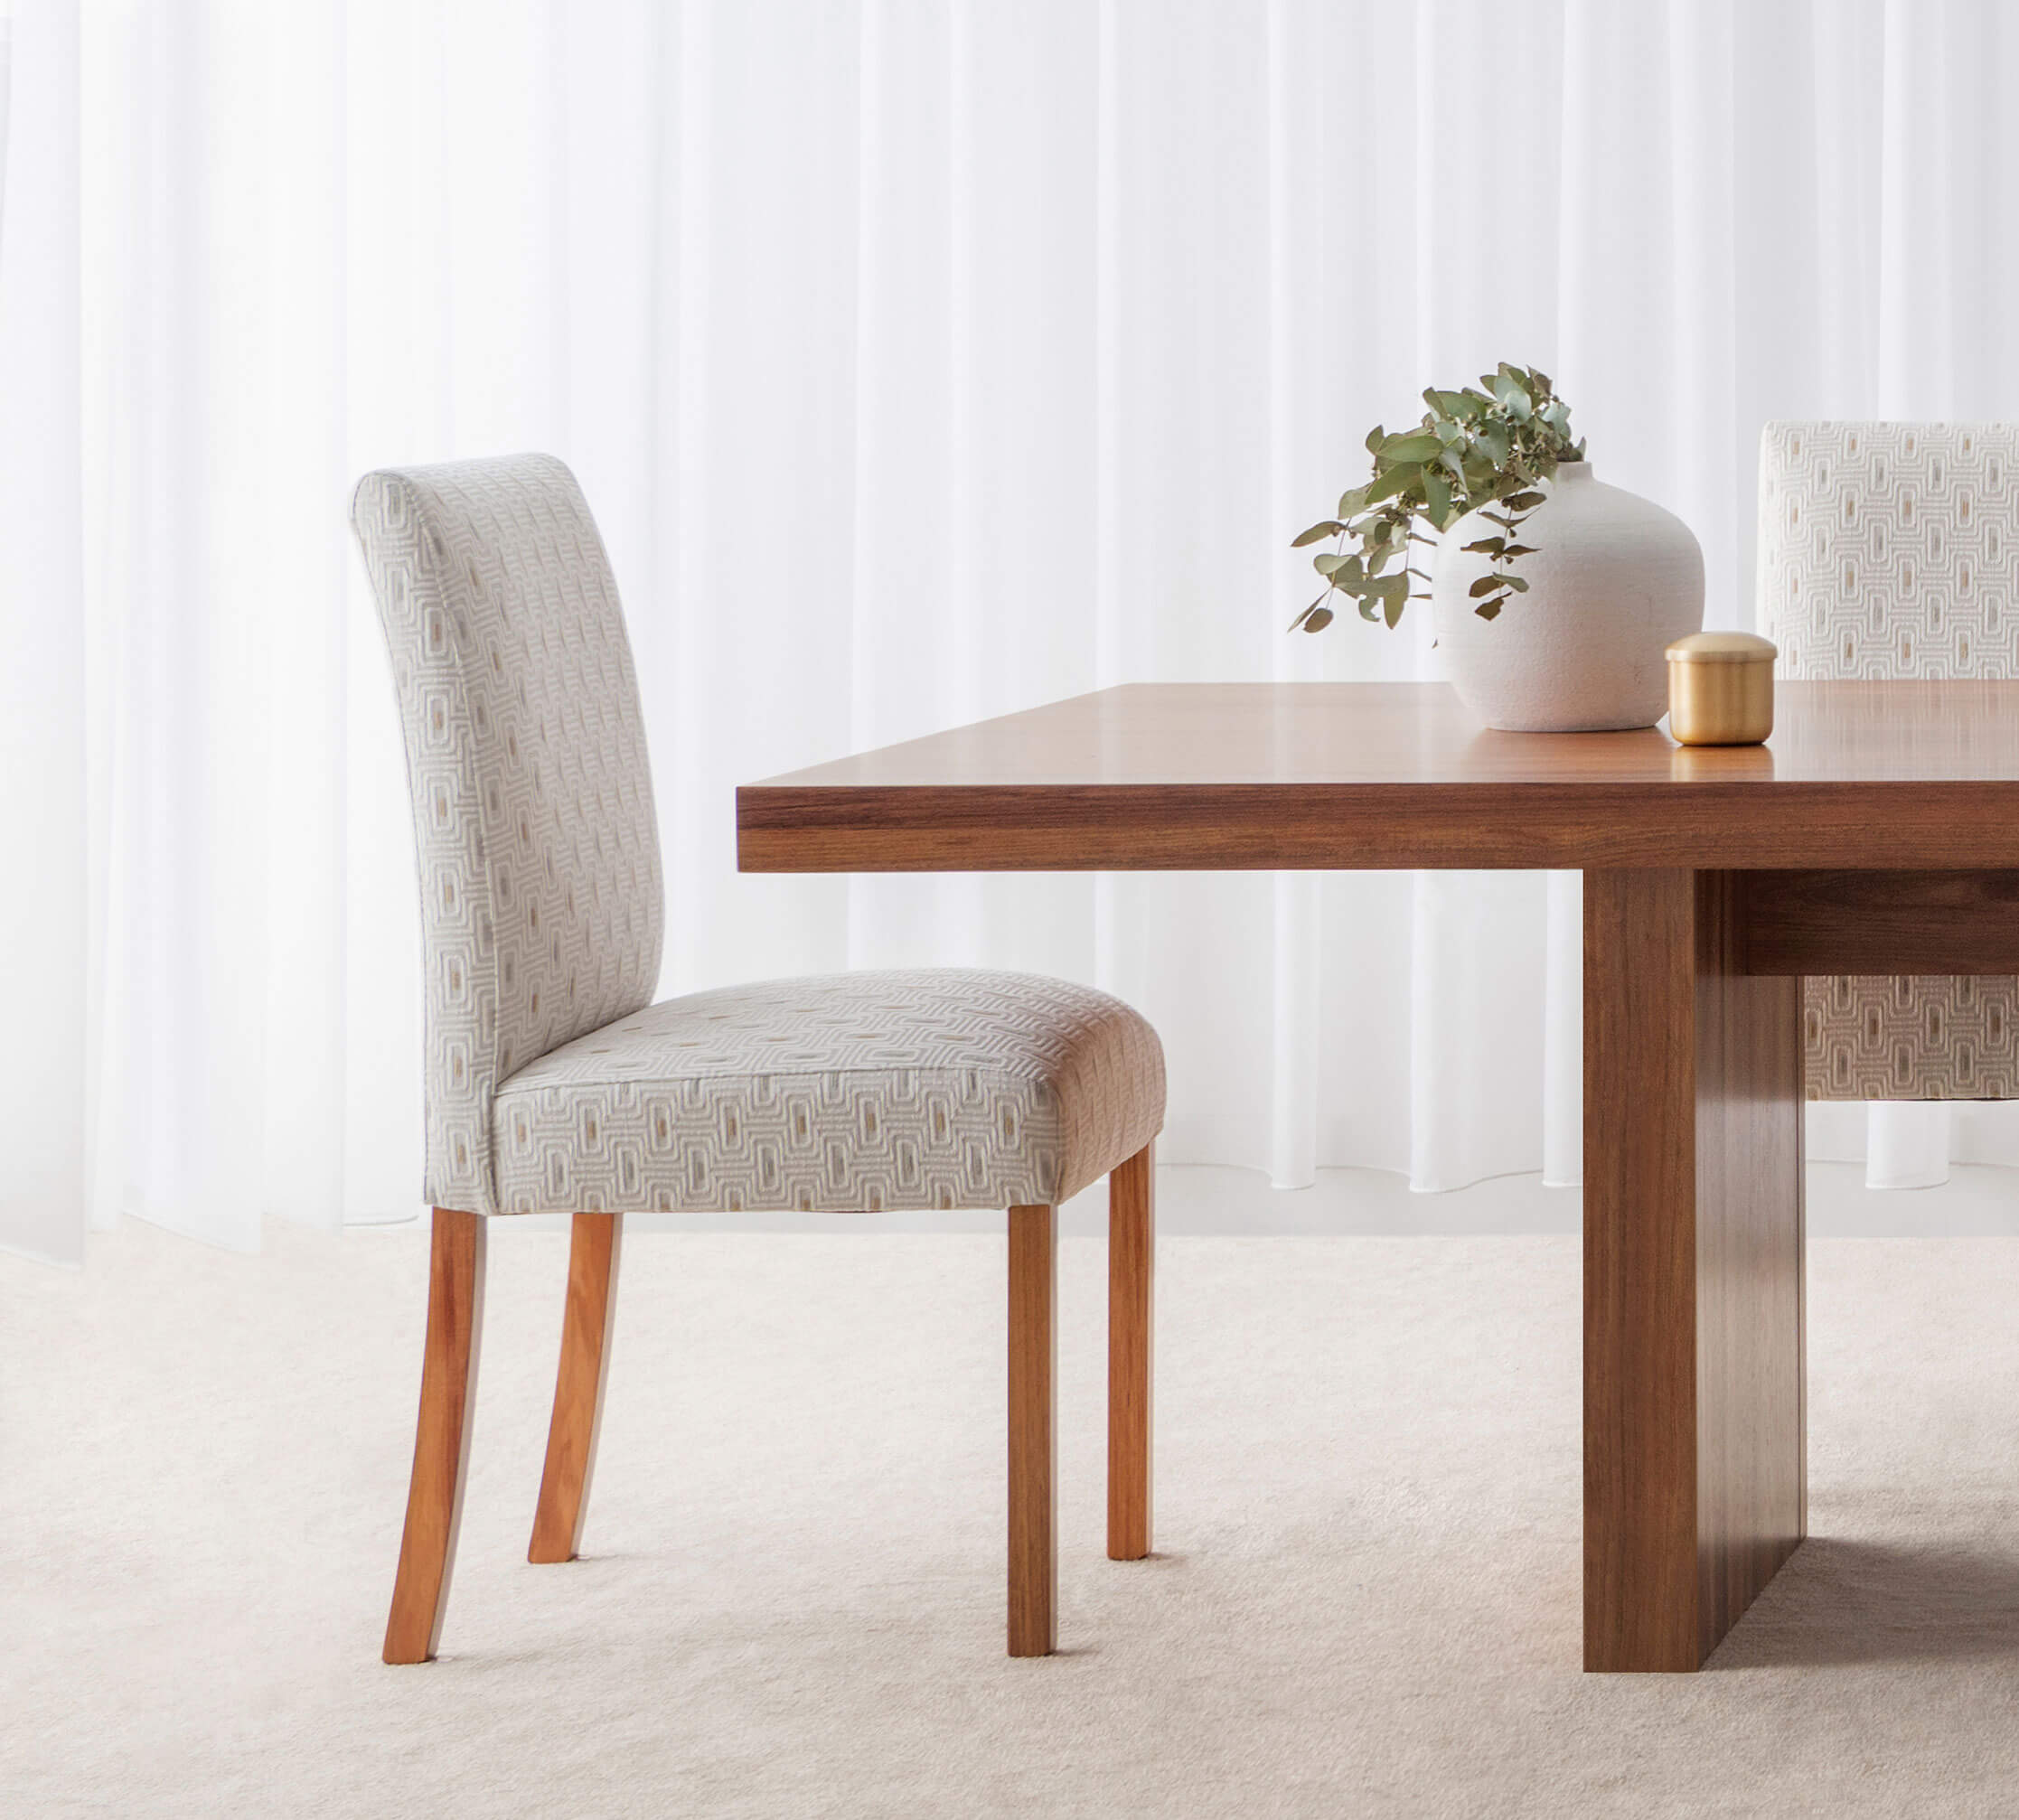 high back upholstered dining chair in light fabric